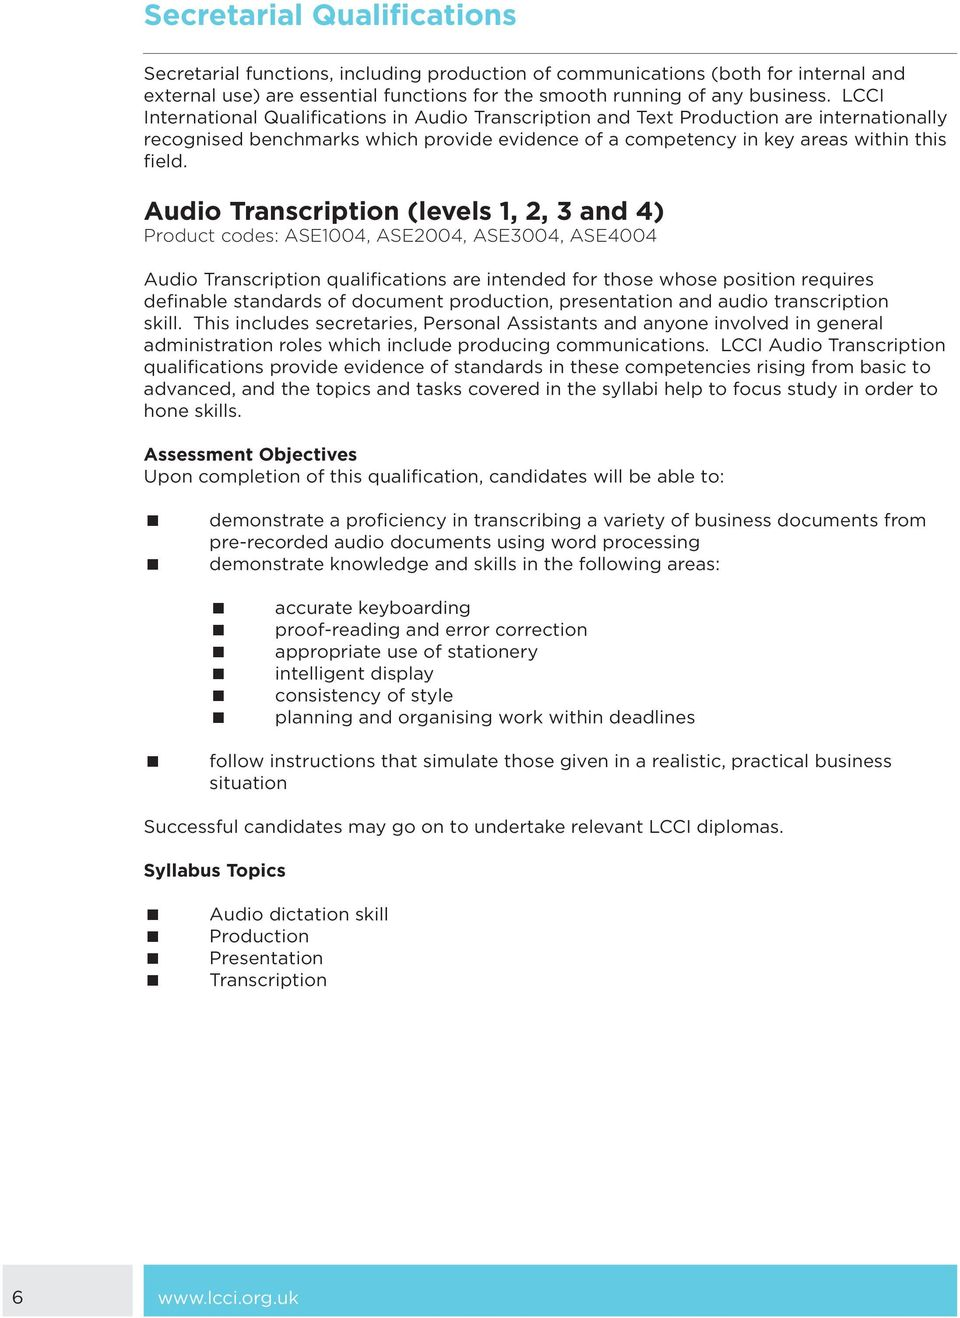 Audio Transcription (levels 1, 2, 3 and 4) Product codes: ASE1004, ASE2004, ASE3004, ASE4004 Audio Transcription qualifications are intended for those whose position requires definable standards of